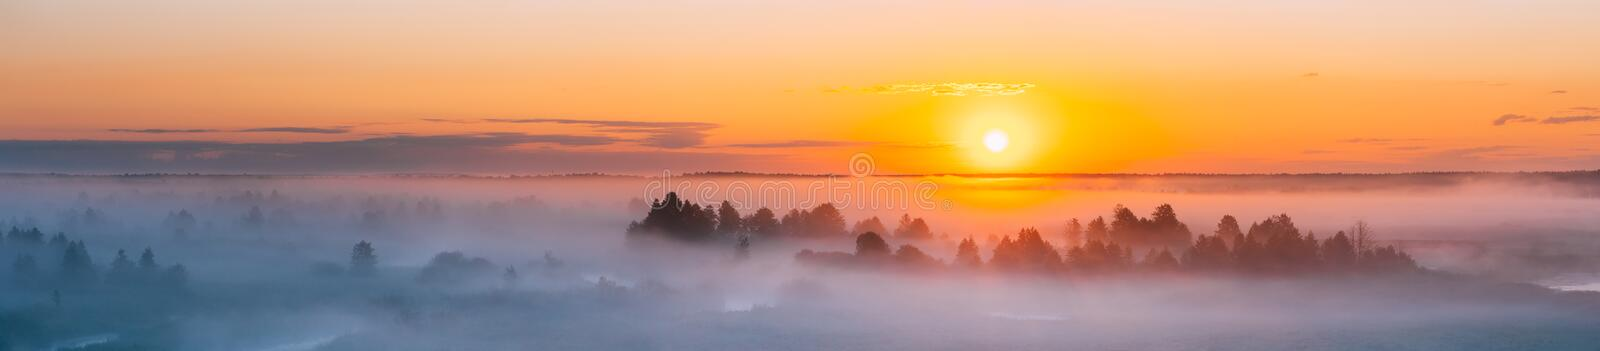 Amazing Sunrise Over Misty Landscape. Scenic View Of Foggy Morning. Sky With Rising Sun Above Misty Forest. Middle Summer Nature Of Europe. Panorama, Panoramic stock images